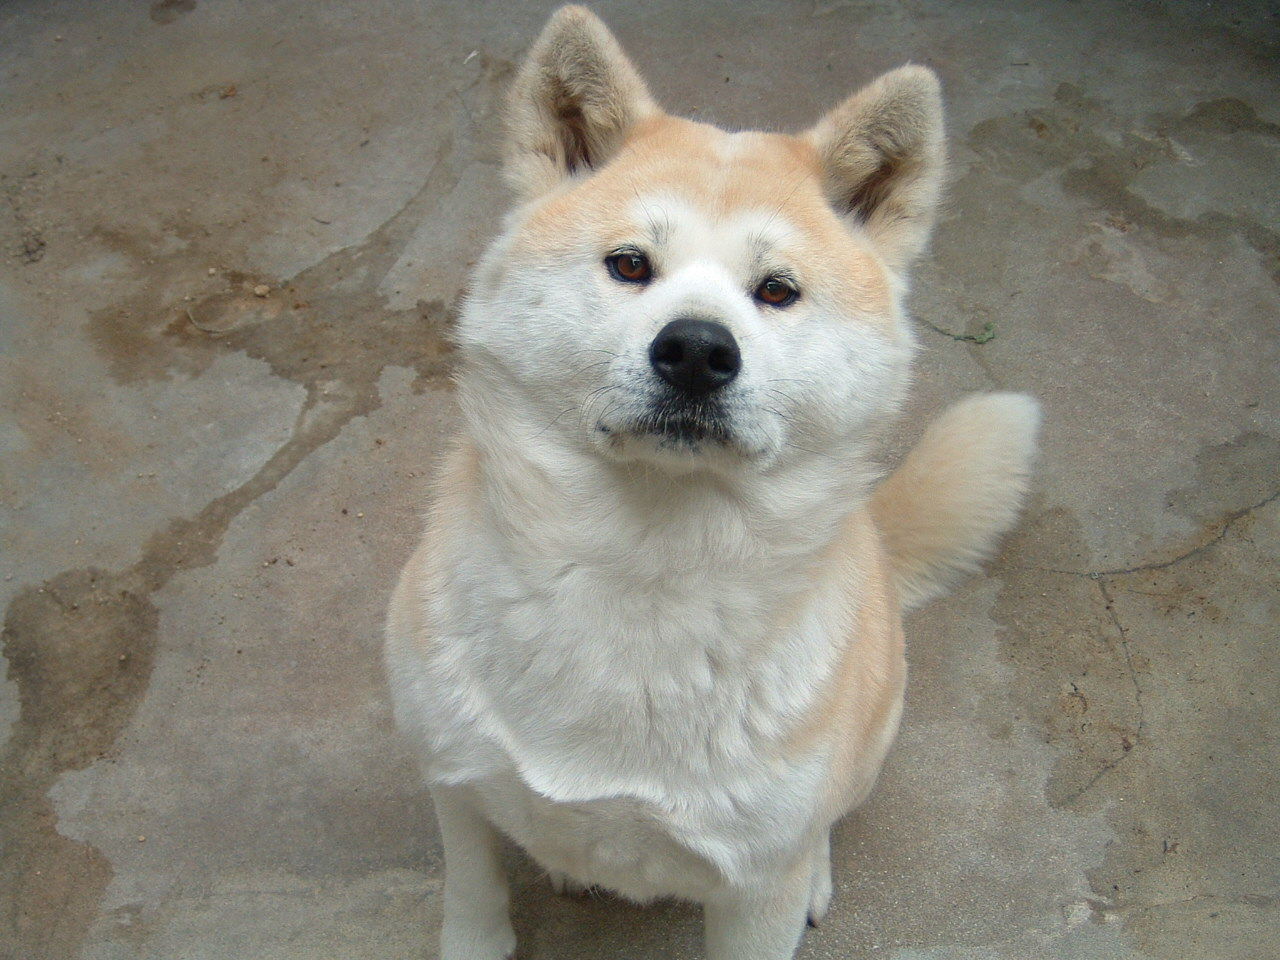 Hachiko dog breed name but the dog is the richard